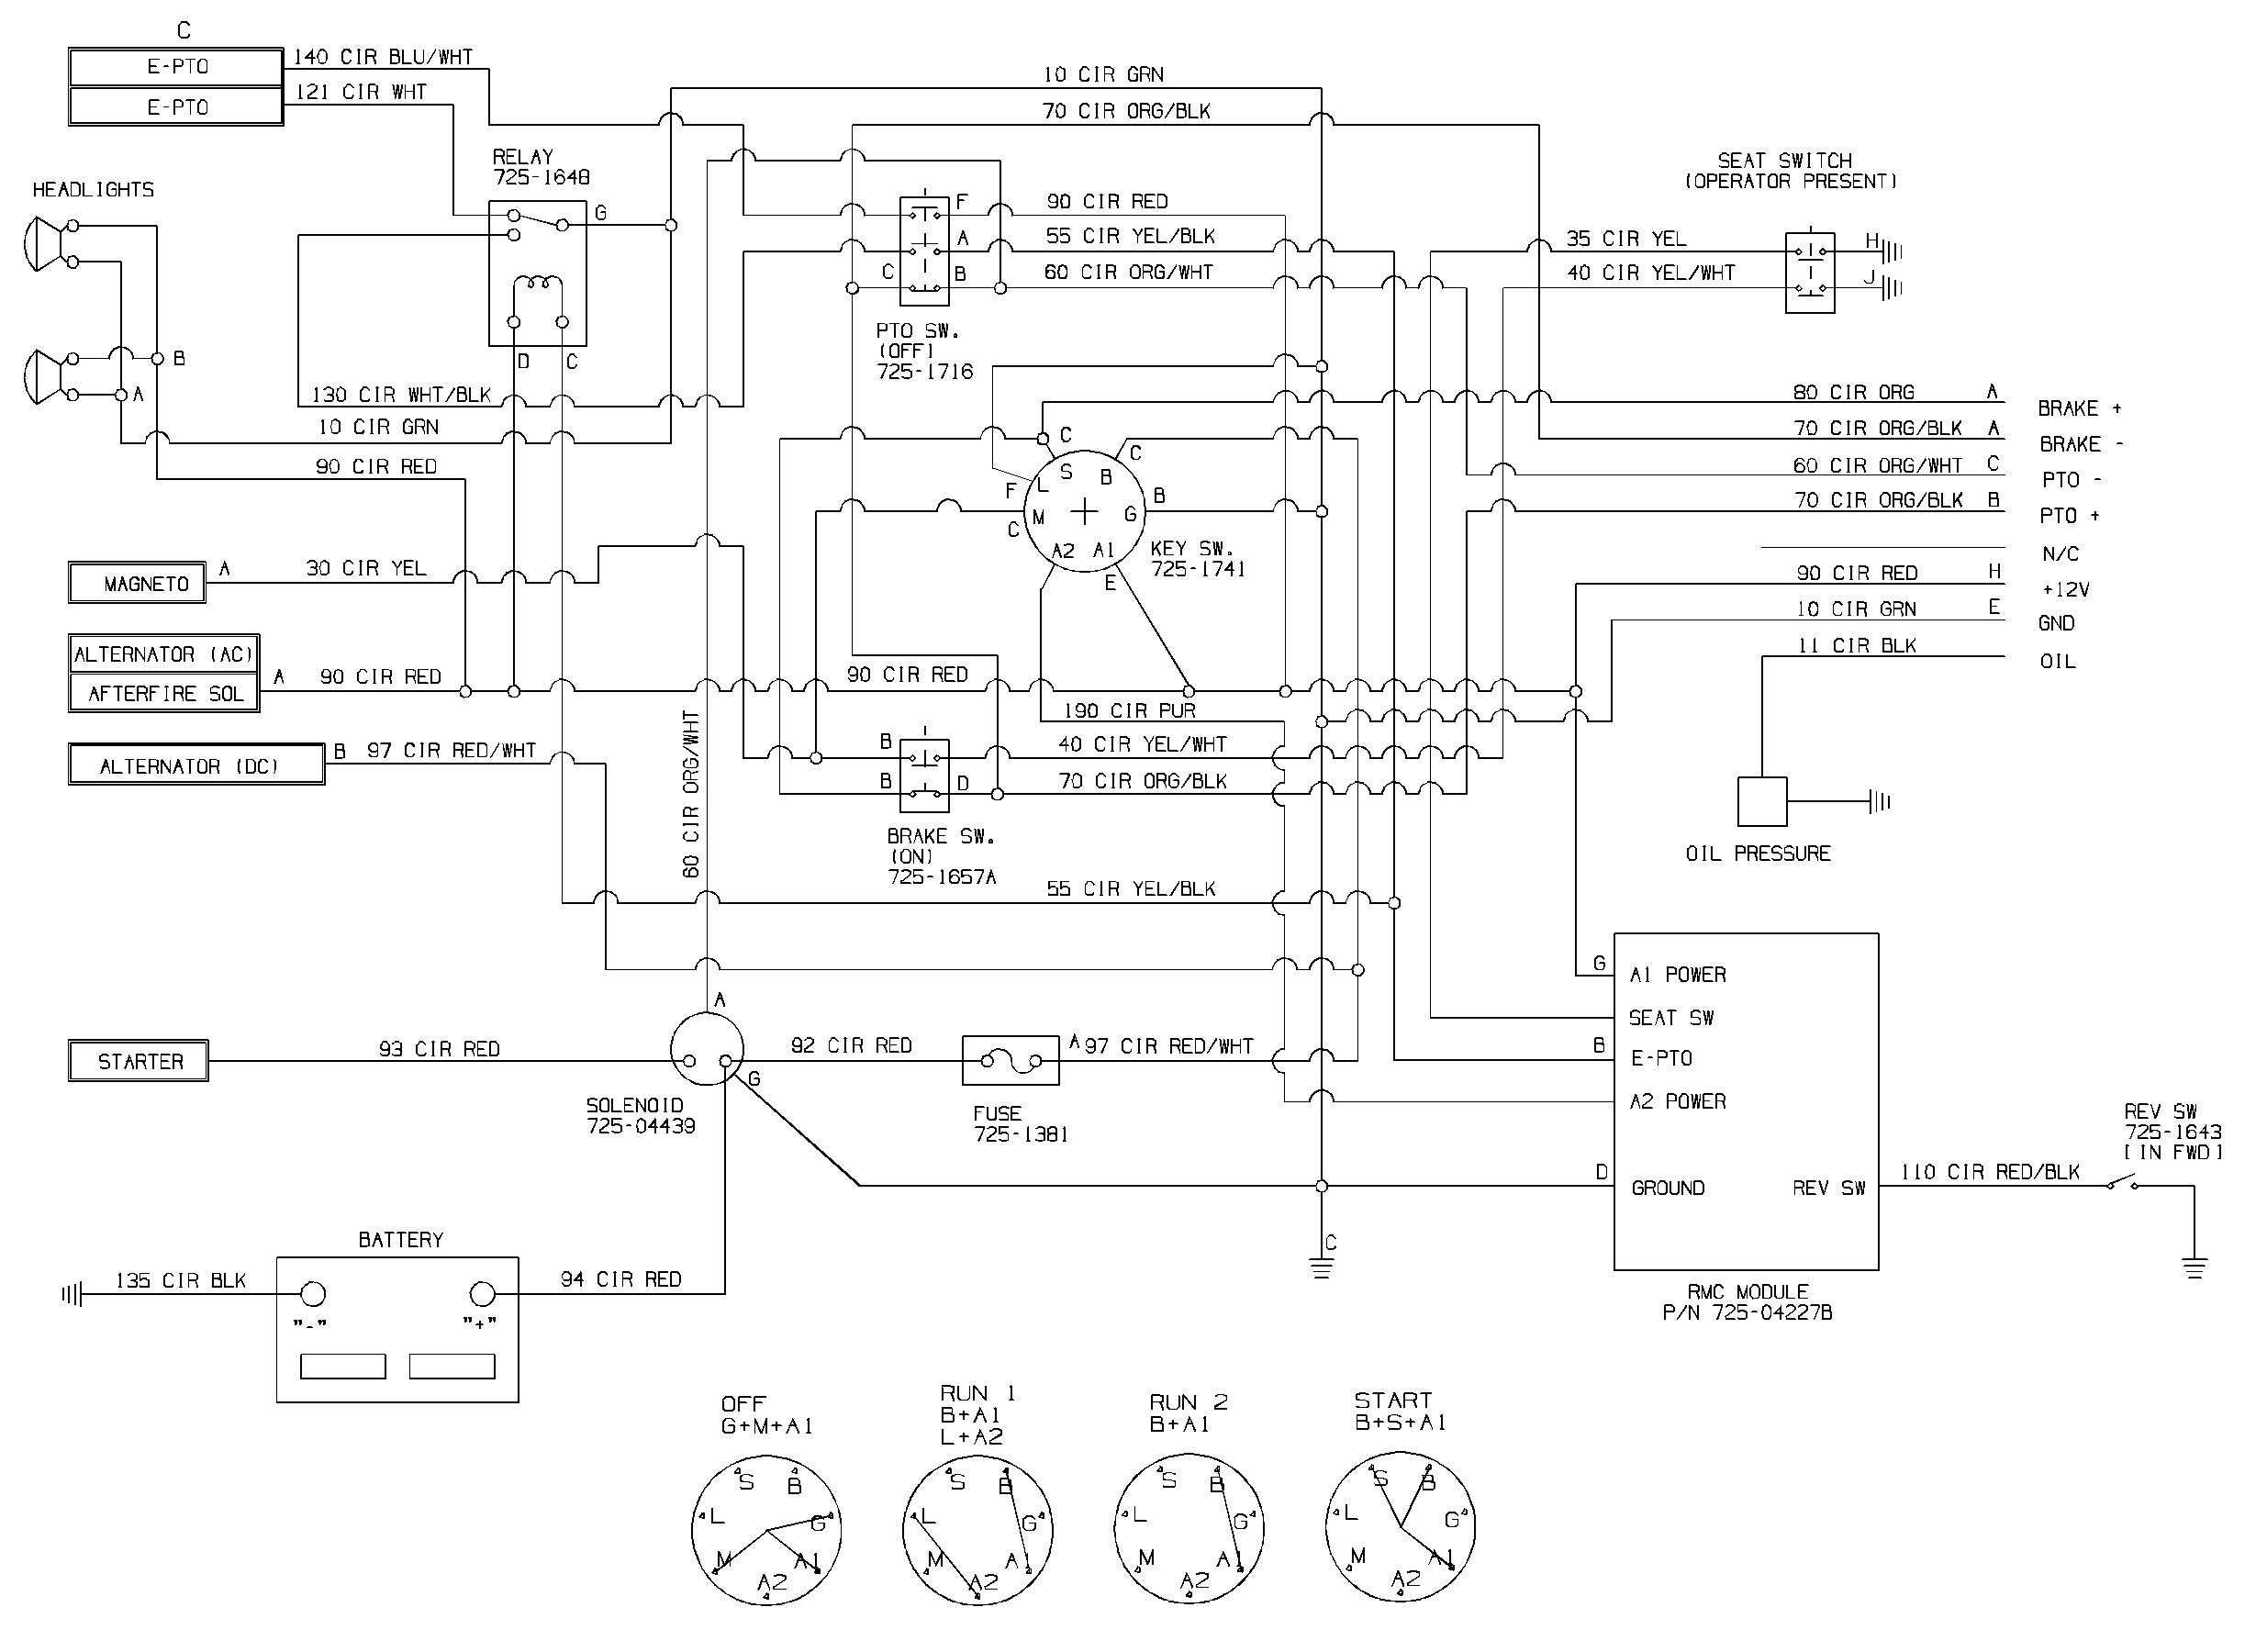 SLTX1050_Schematic wiring diagram for cub cadet zero turn the wiring diagram cub cadet rzt 54 wiring diagram at alyssarenee.co